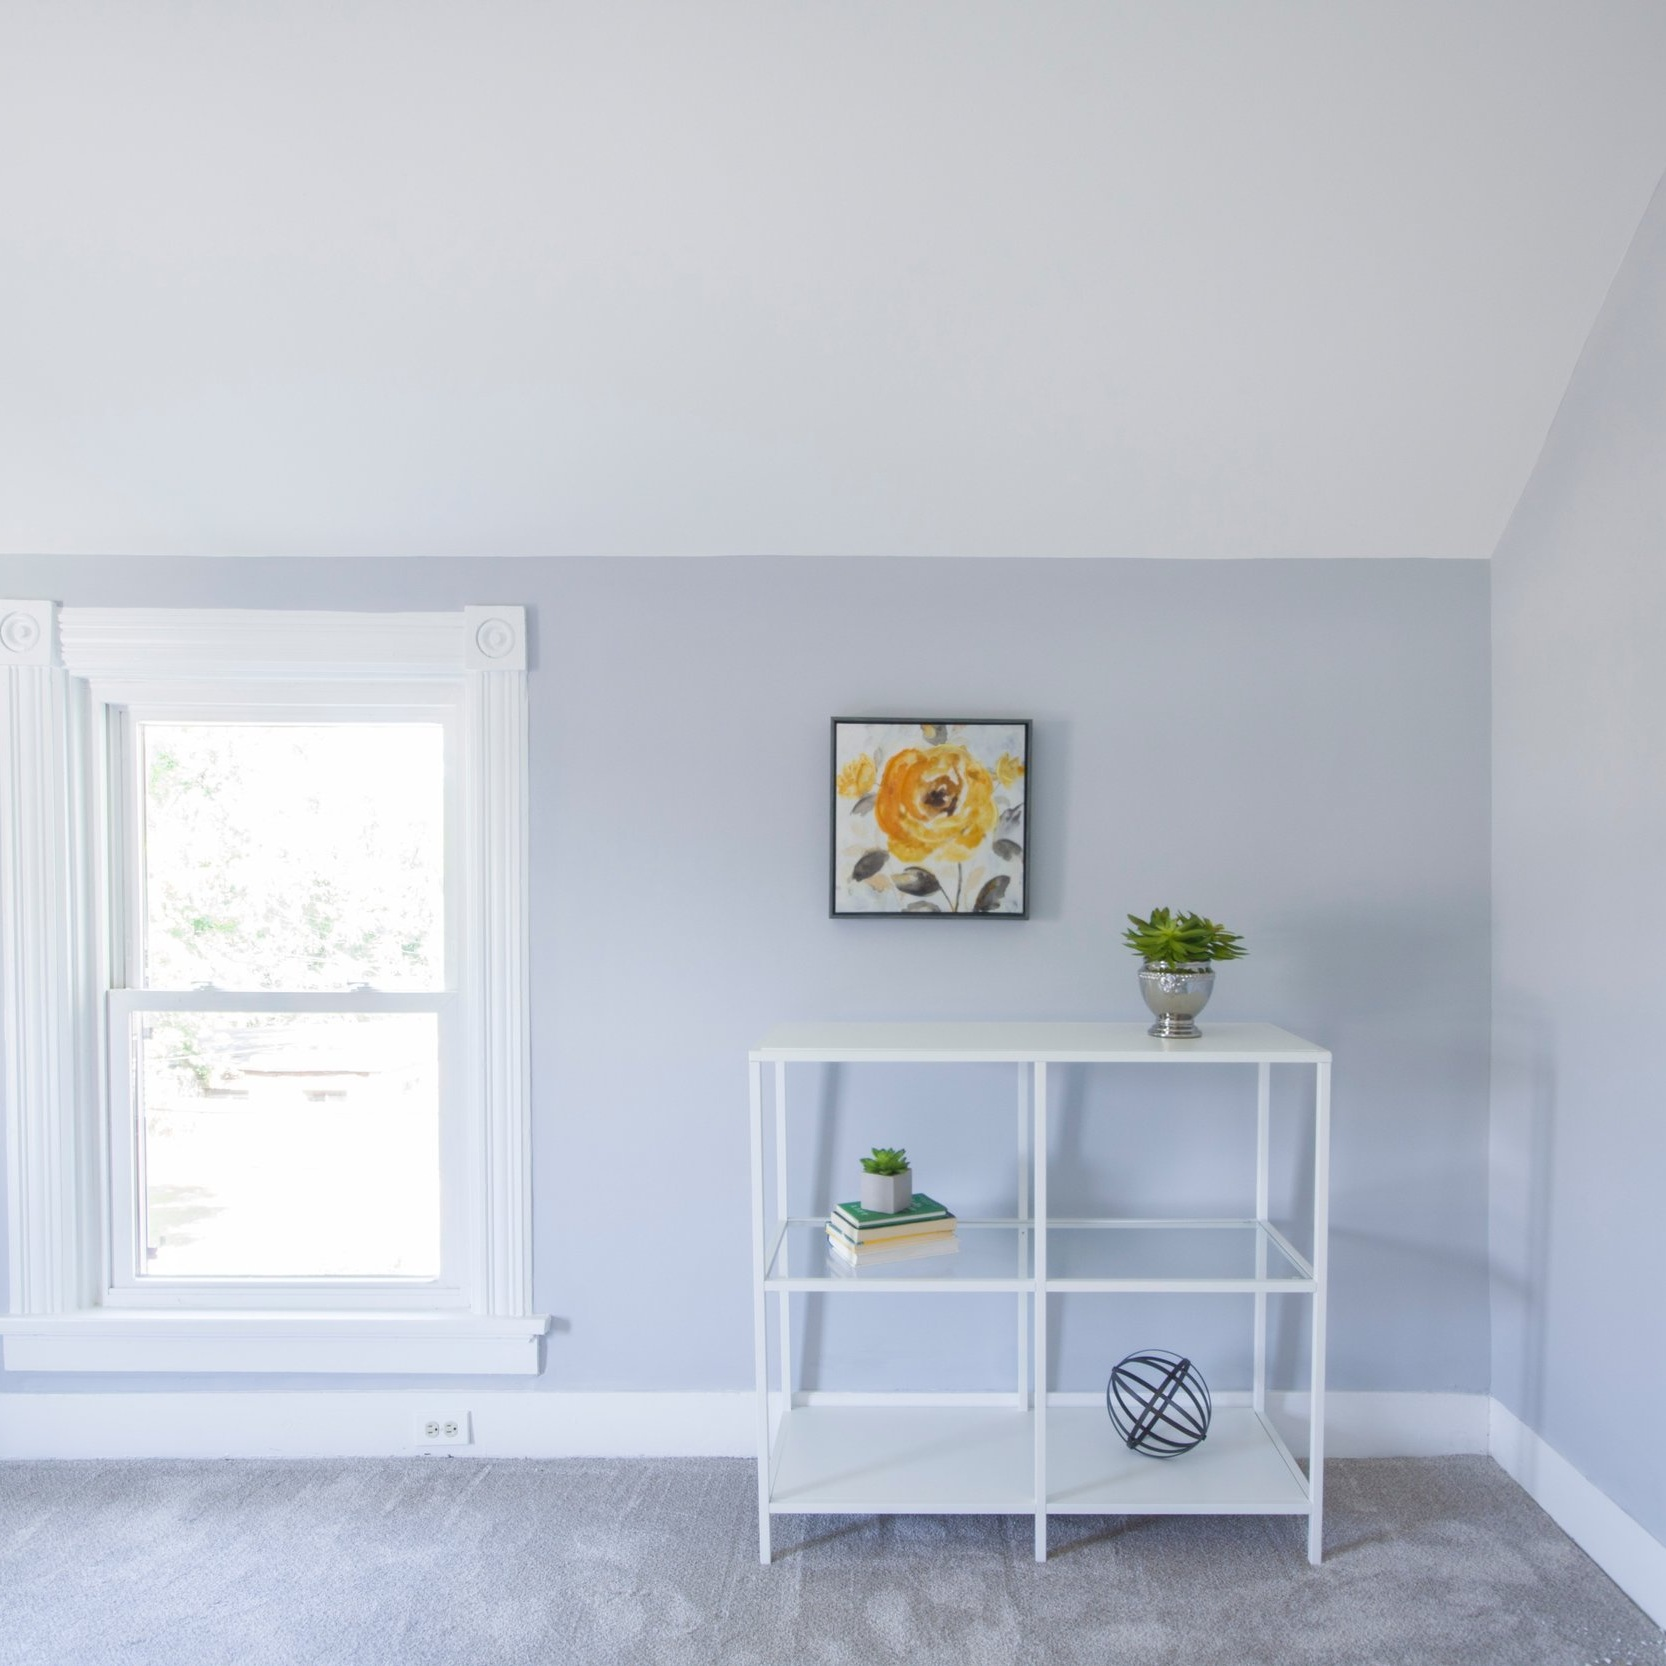 While not affected by weather, an interior needs to be kept clean and fresh-looking.